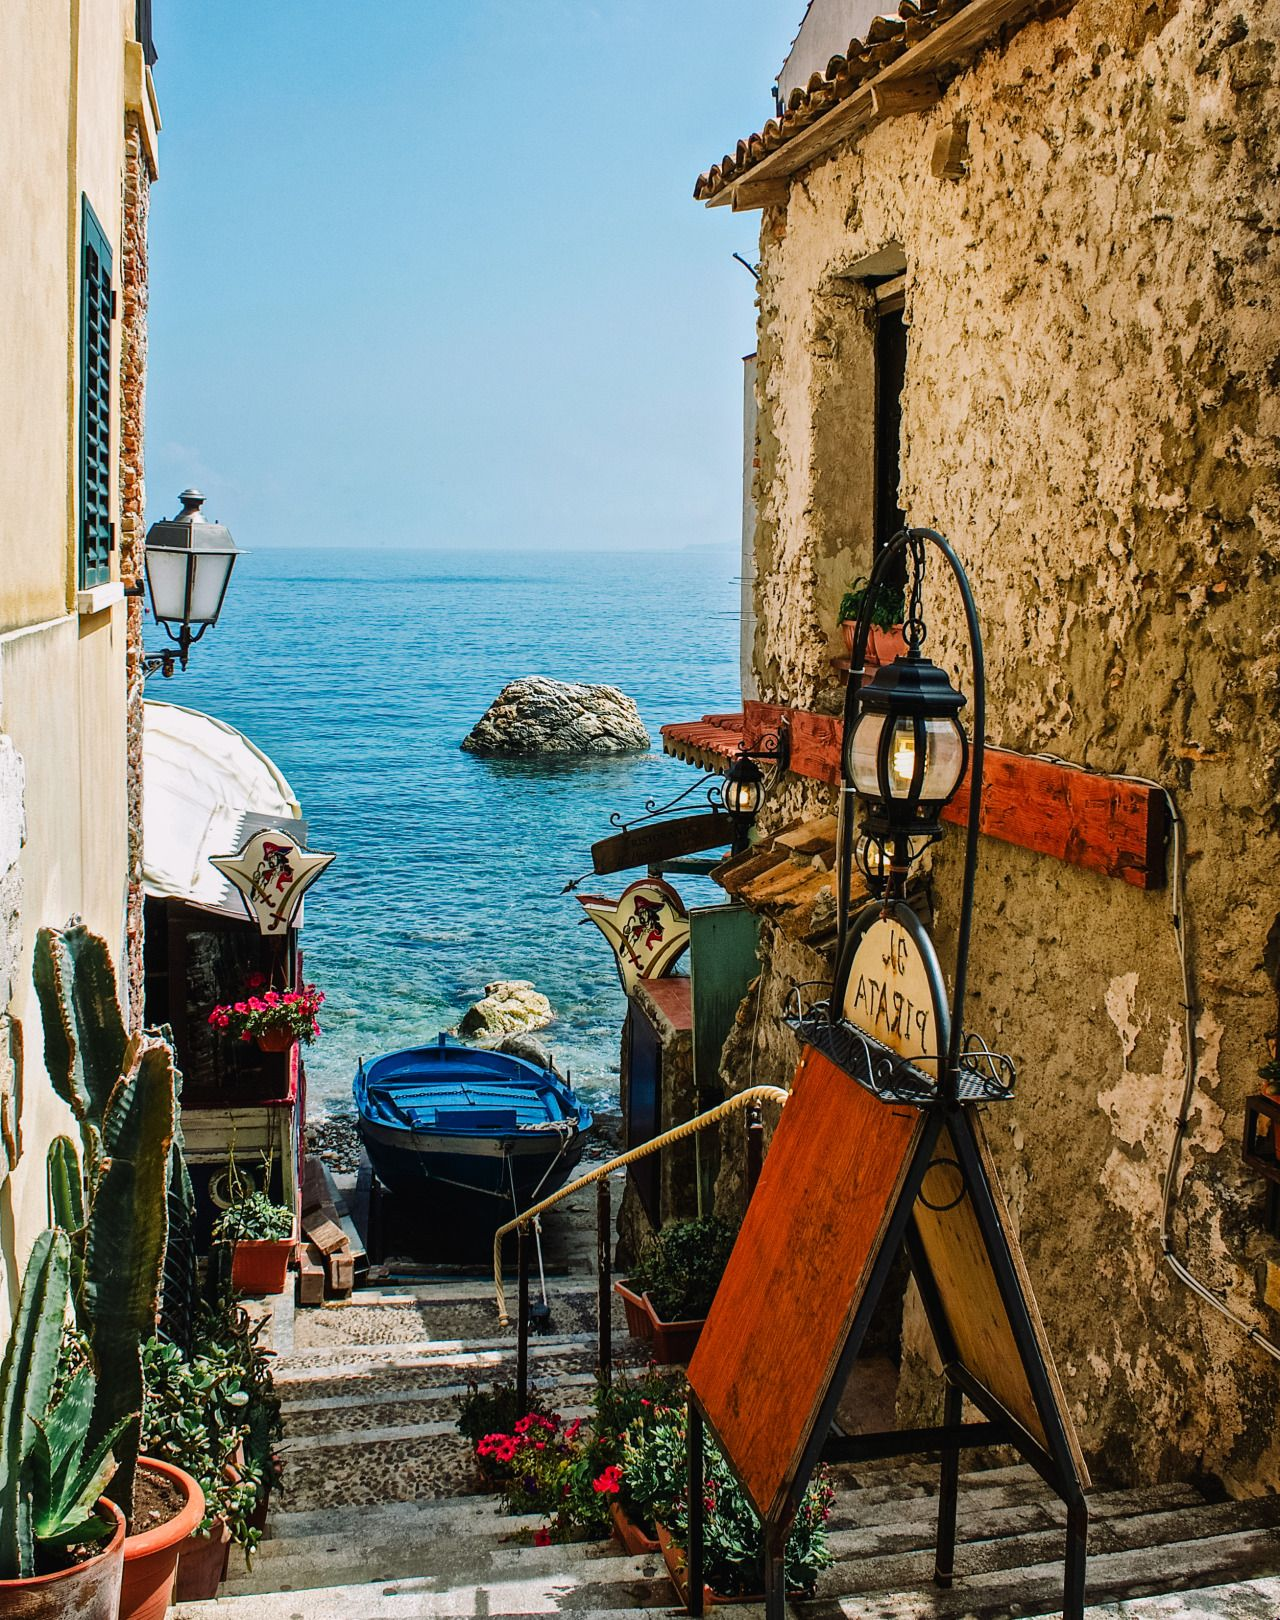 mostlyitaly Chianalea Calabria Italy A Passport Affair